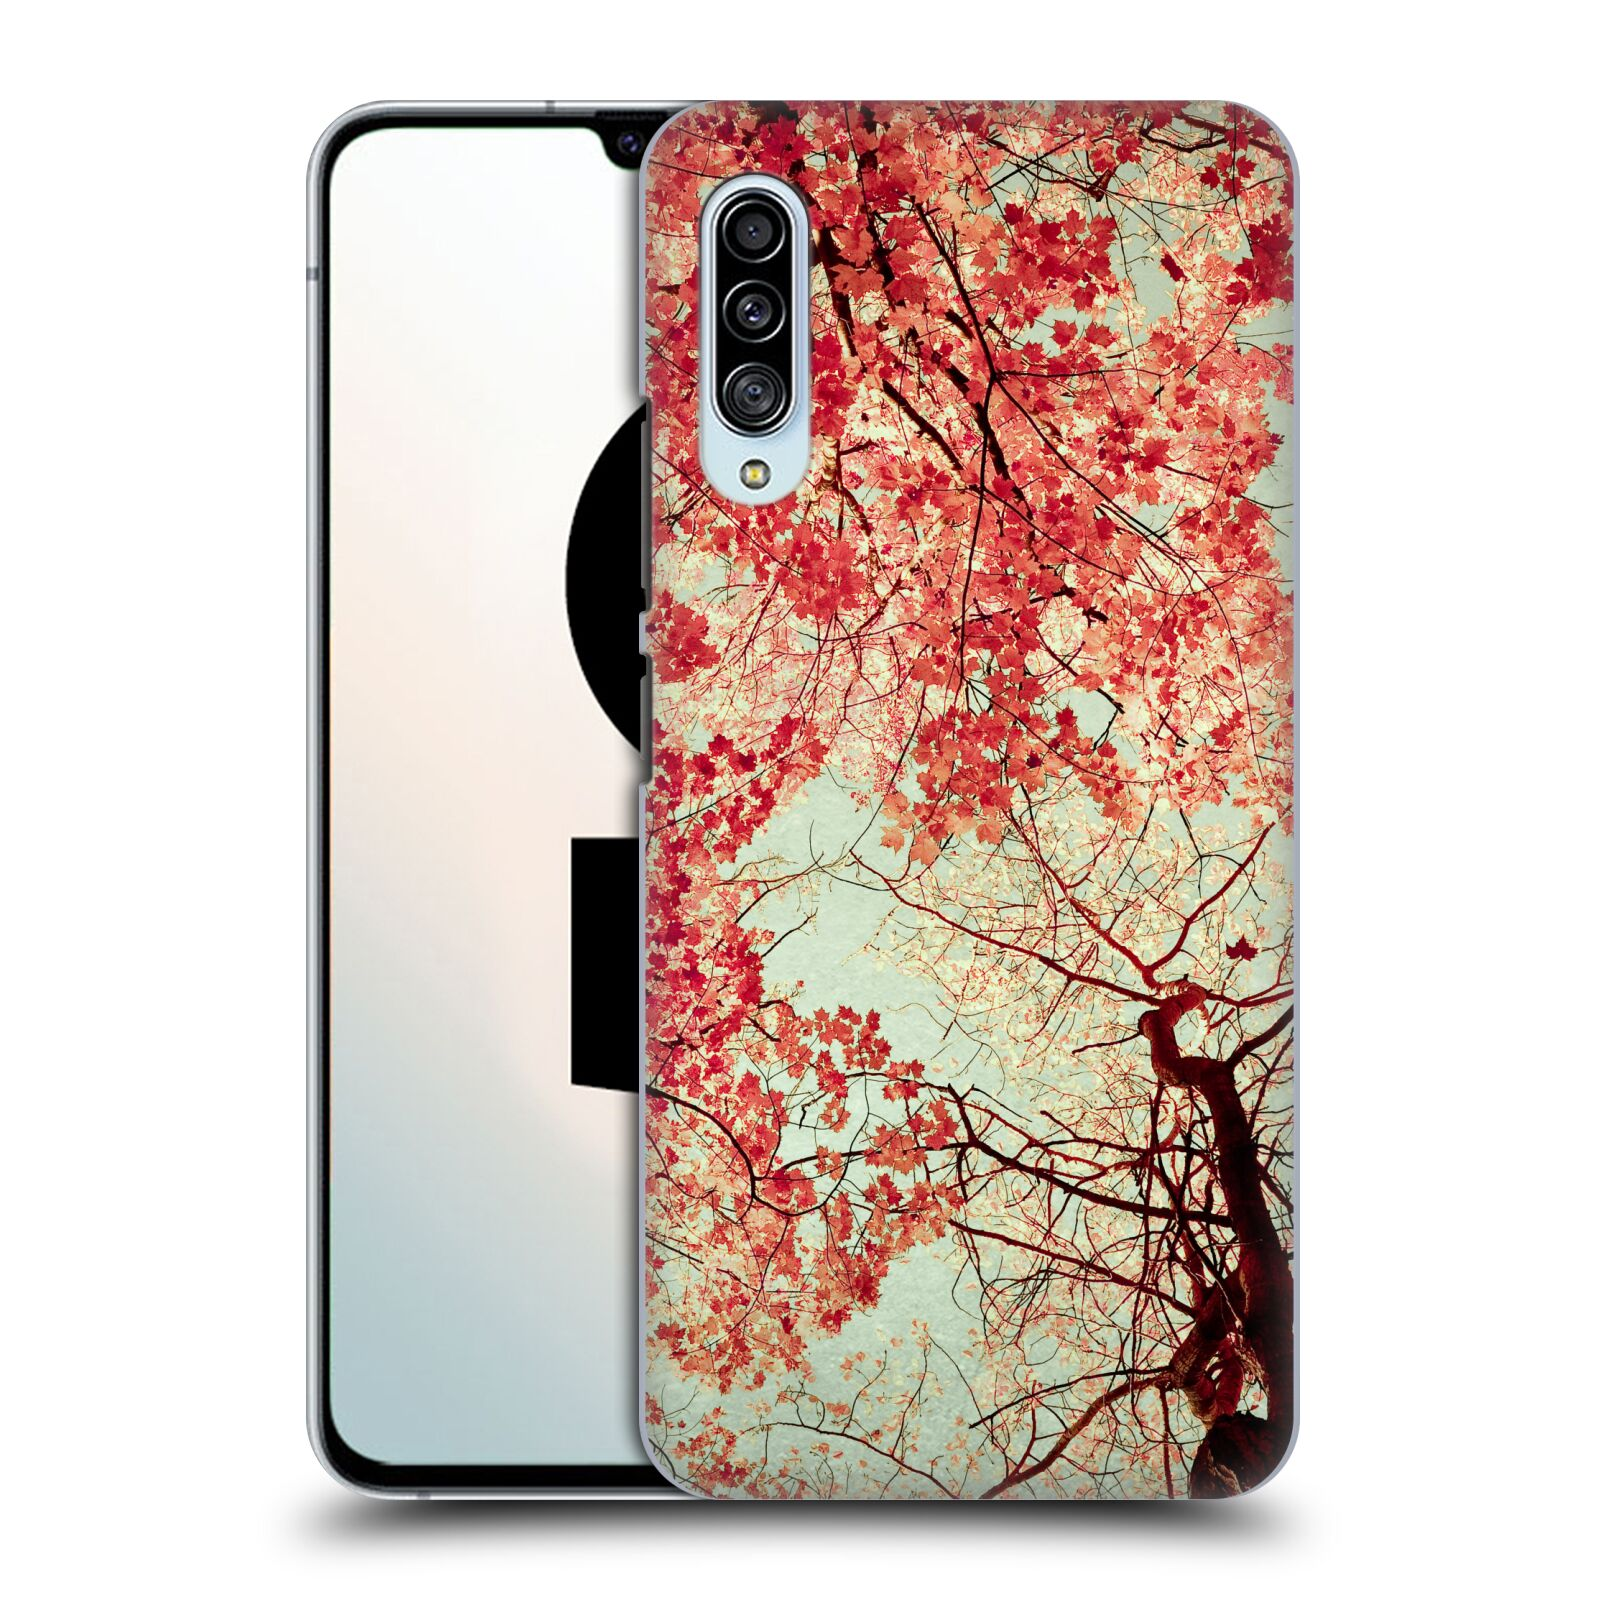 Official Olivia Joy StClaire Nature Autumn Red Case for Samsung Galaxy A90 5G (2019)